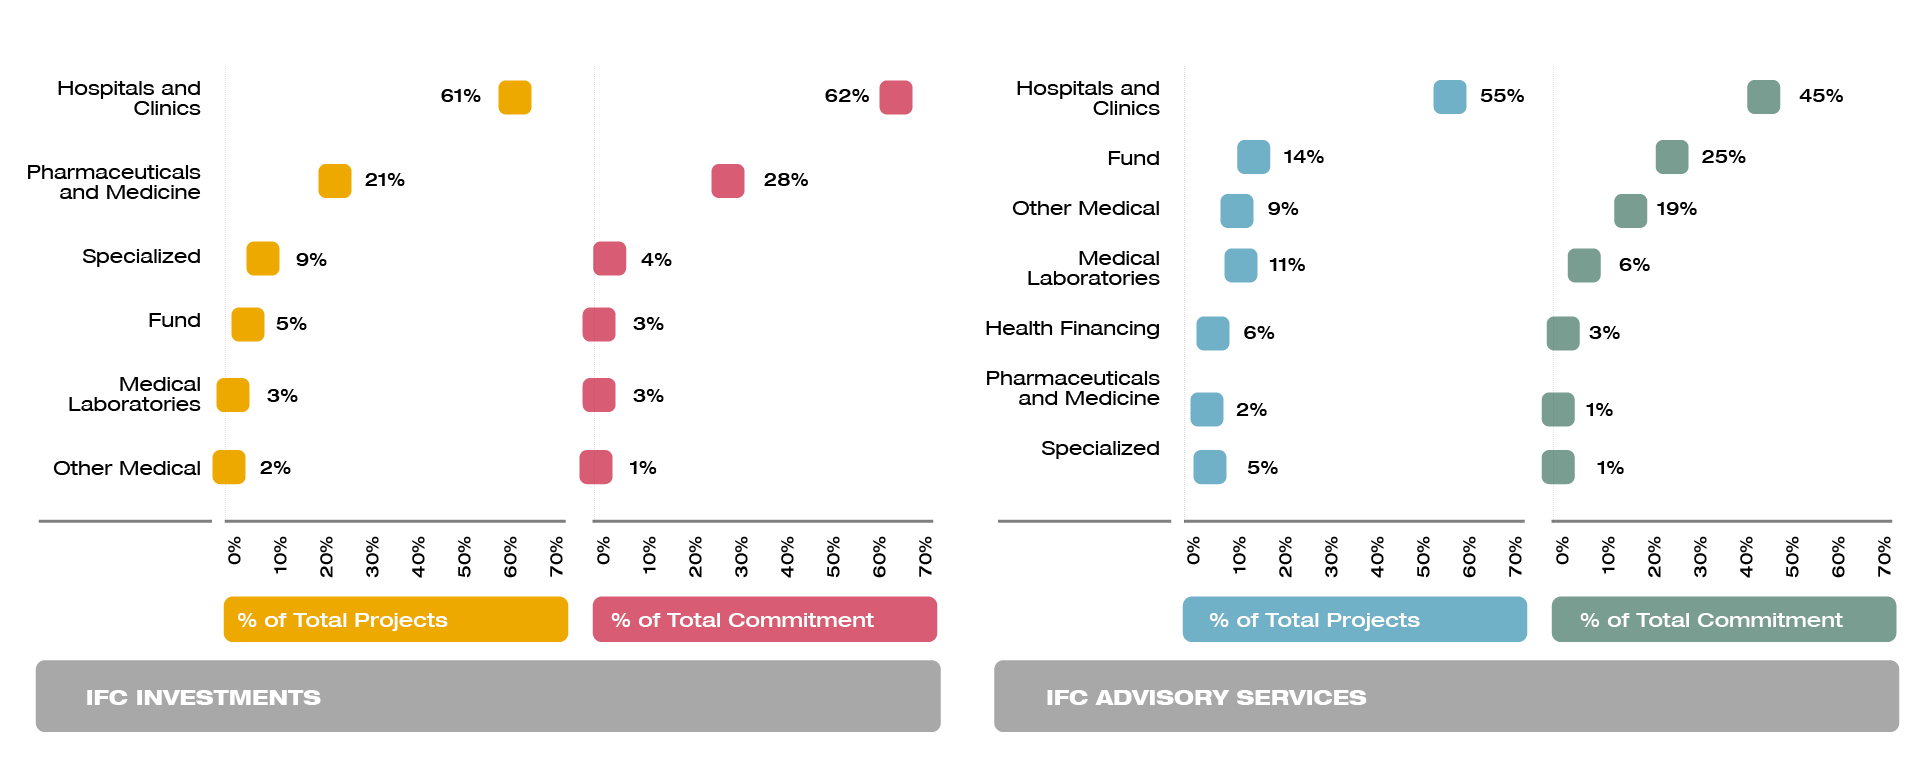 IFC Advisory and Investment Services Recipients for Health Services